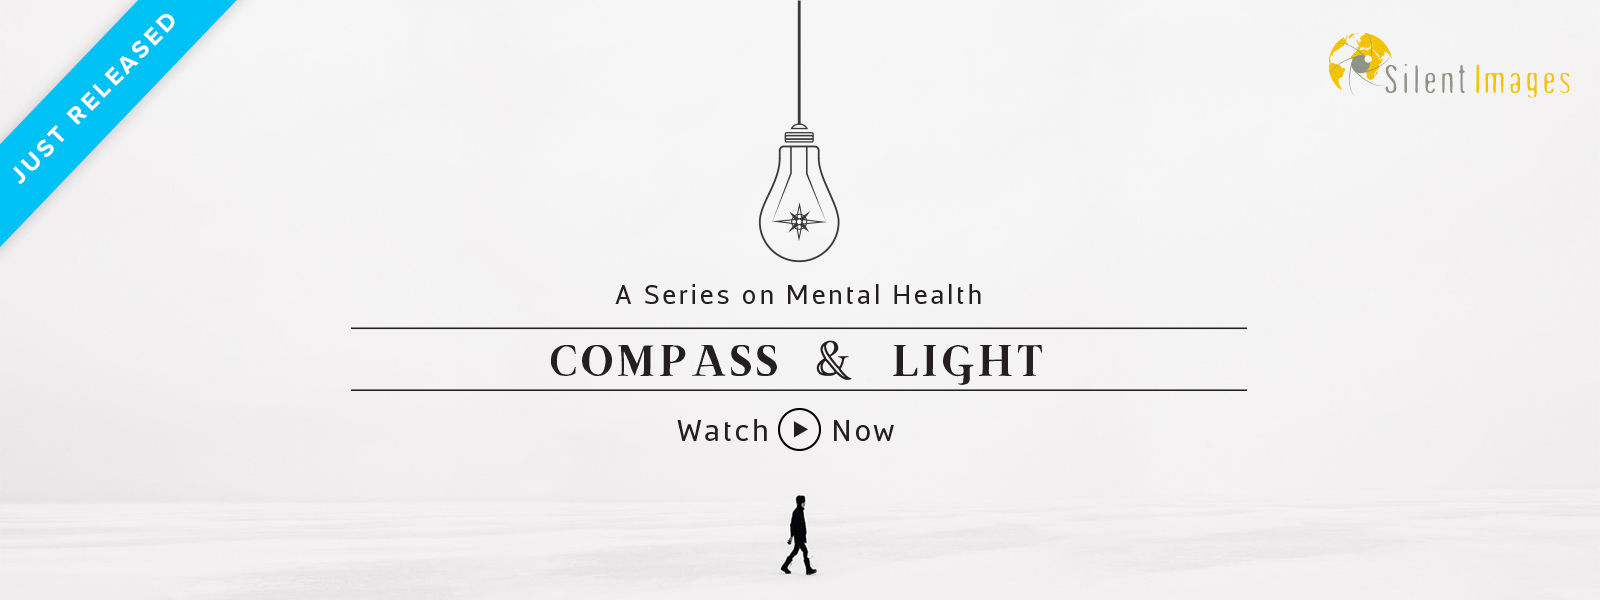 Compass & Light: Mental Health Series